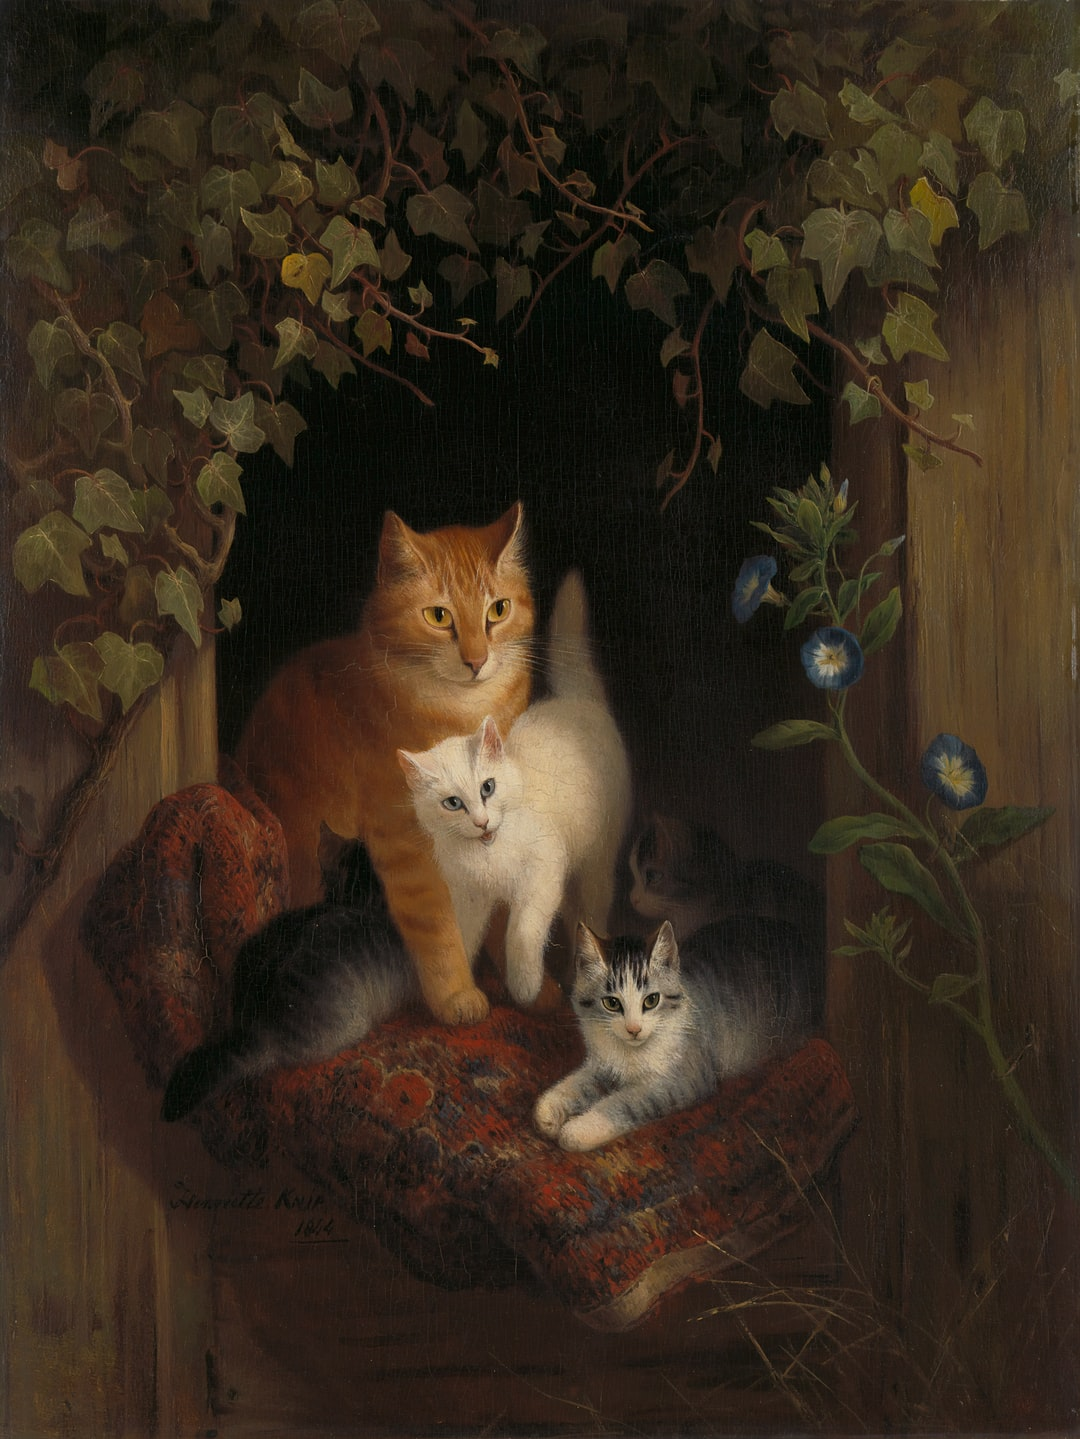 Title: Cat with Kittens. Date: 1844. Institution: Rijksmuseum. Provider: Rijksmuseum. Providing Country: Netherlands. Public Domain